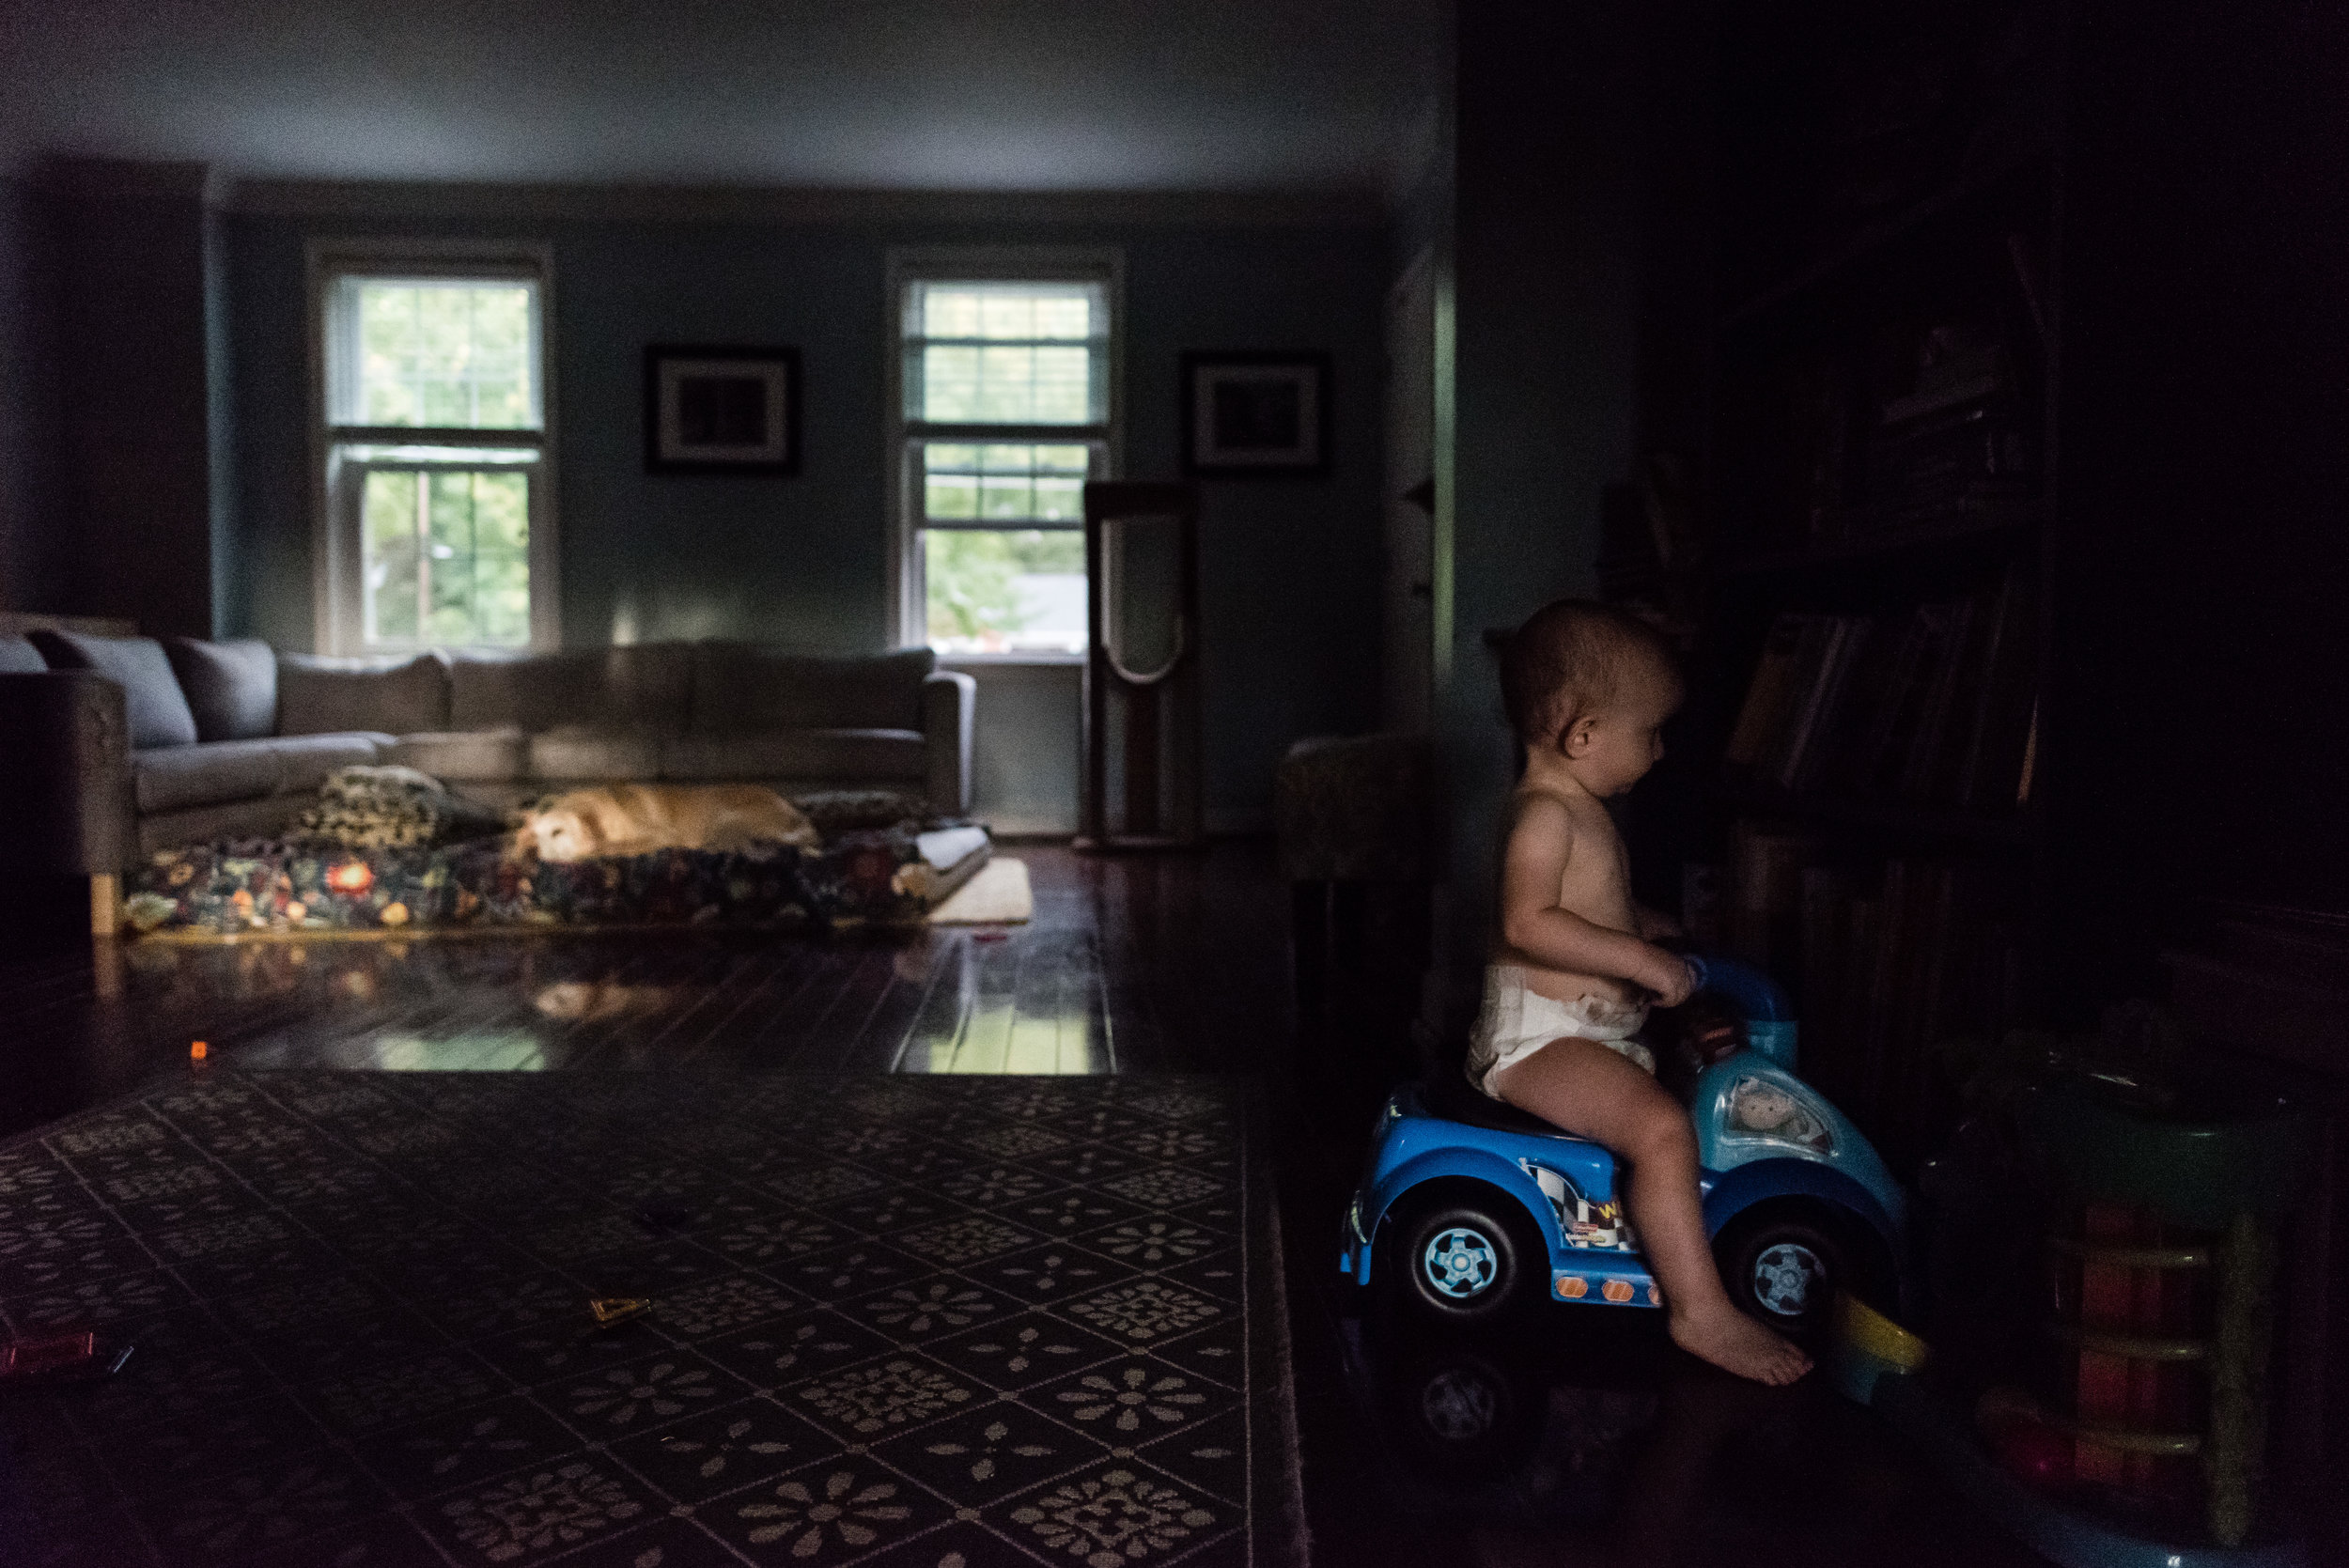 baby riding toy car by northern virginia family photographer nicole sanchez